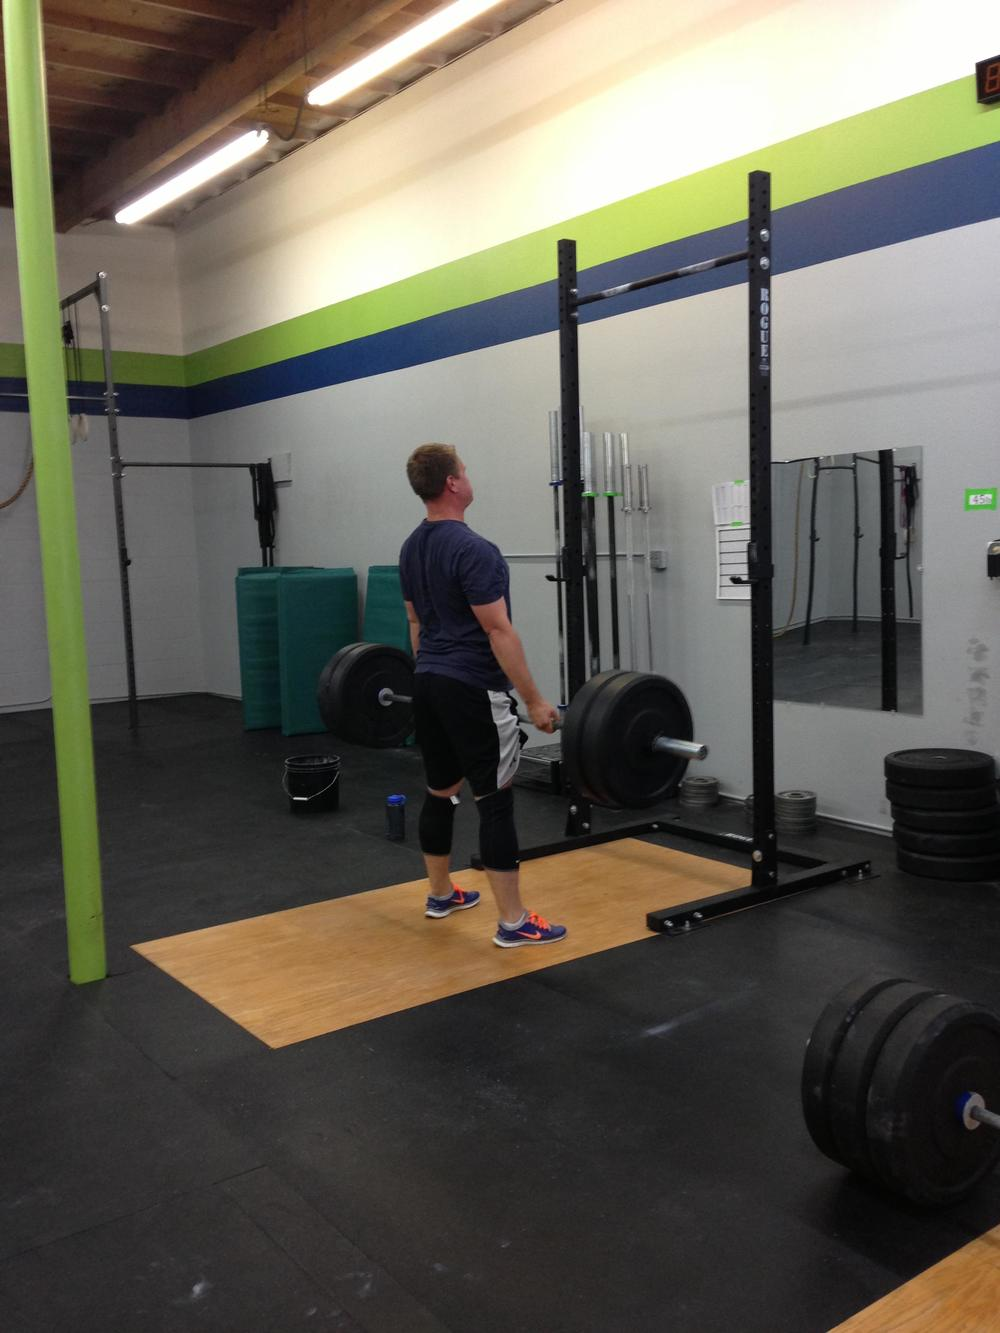 Chad looking strong on those deadlifts!